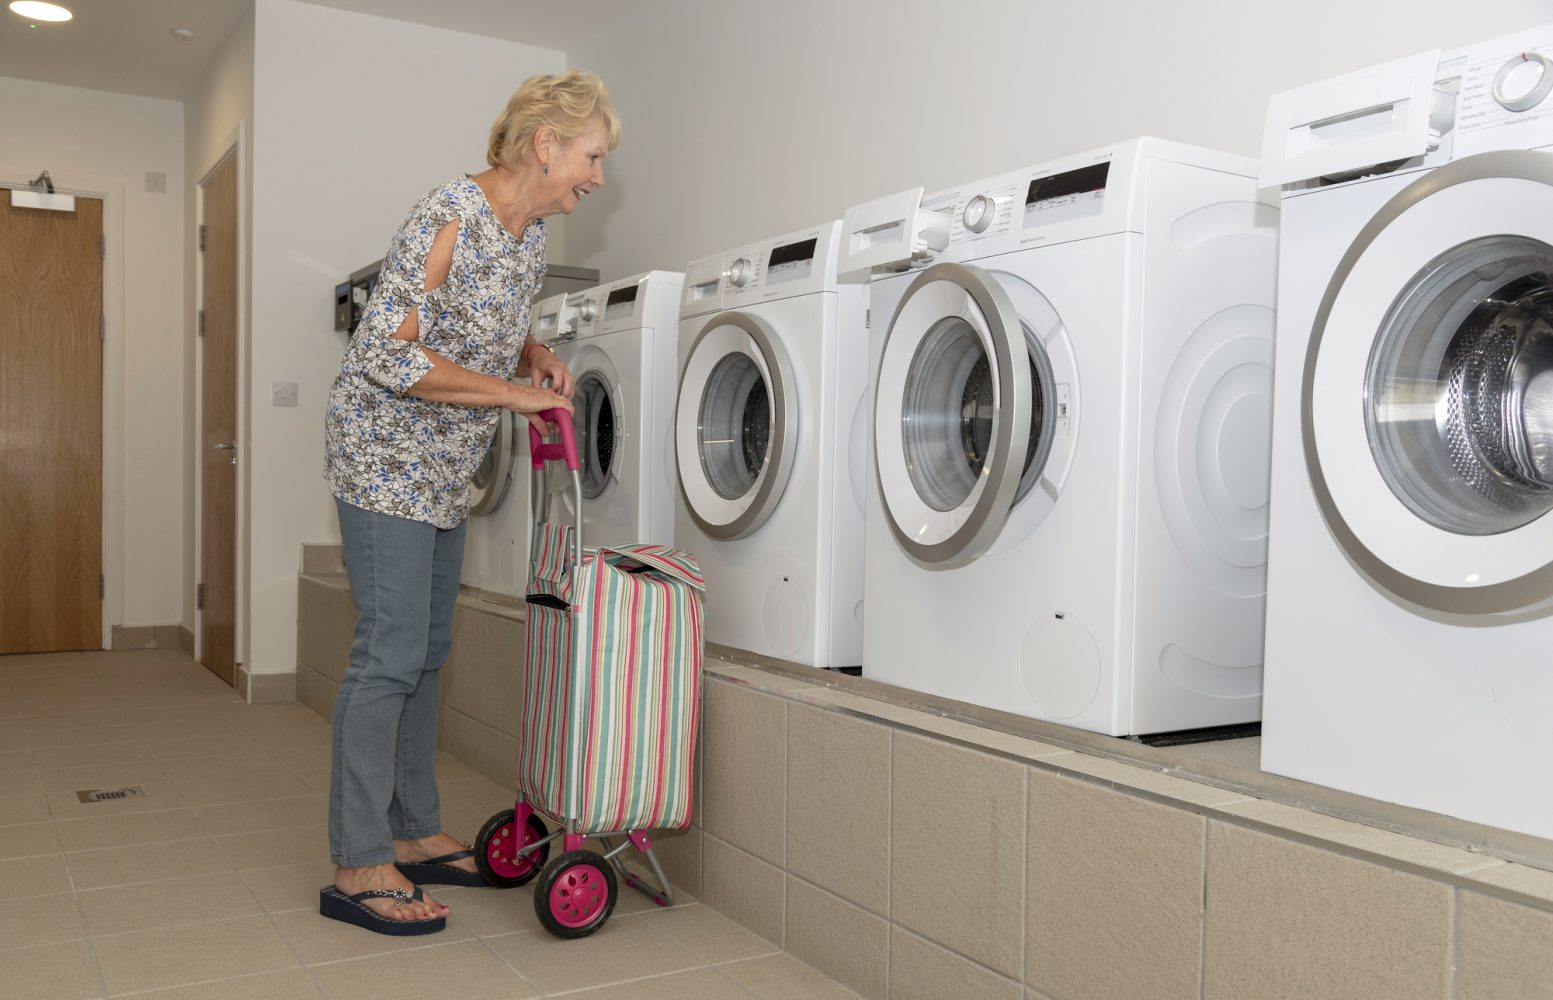 assisted senior living facility laundry equipment